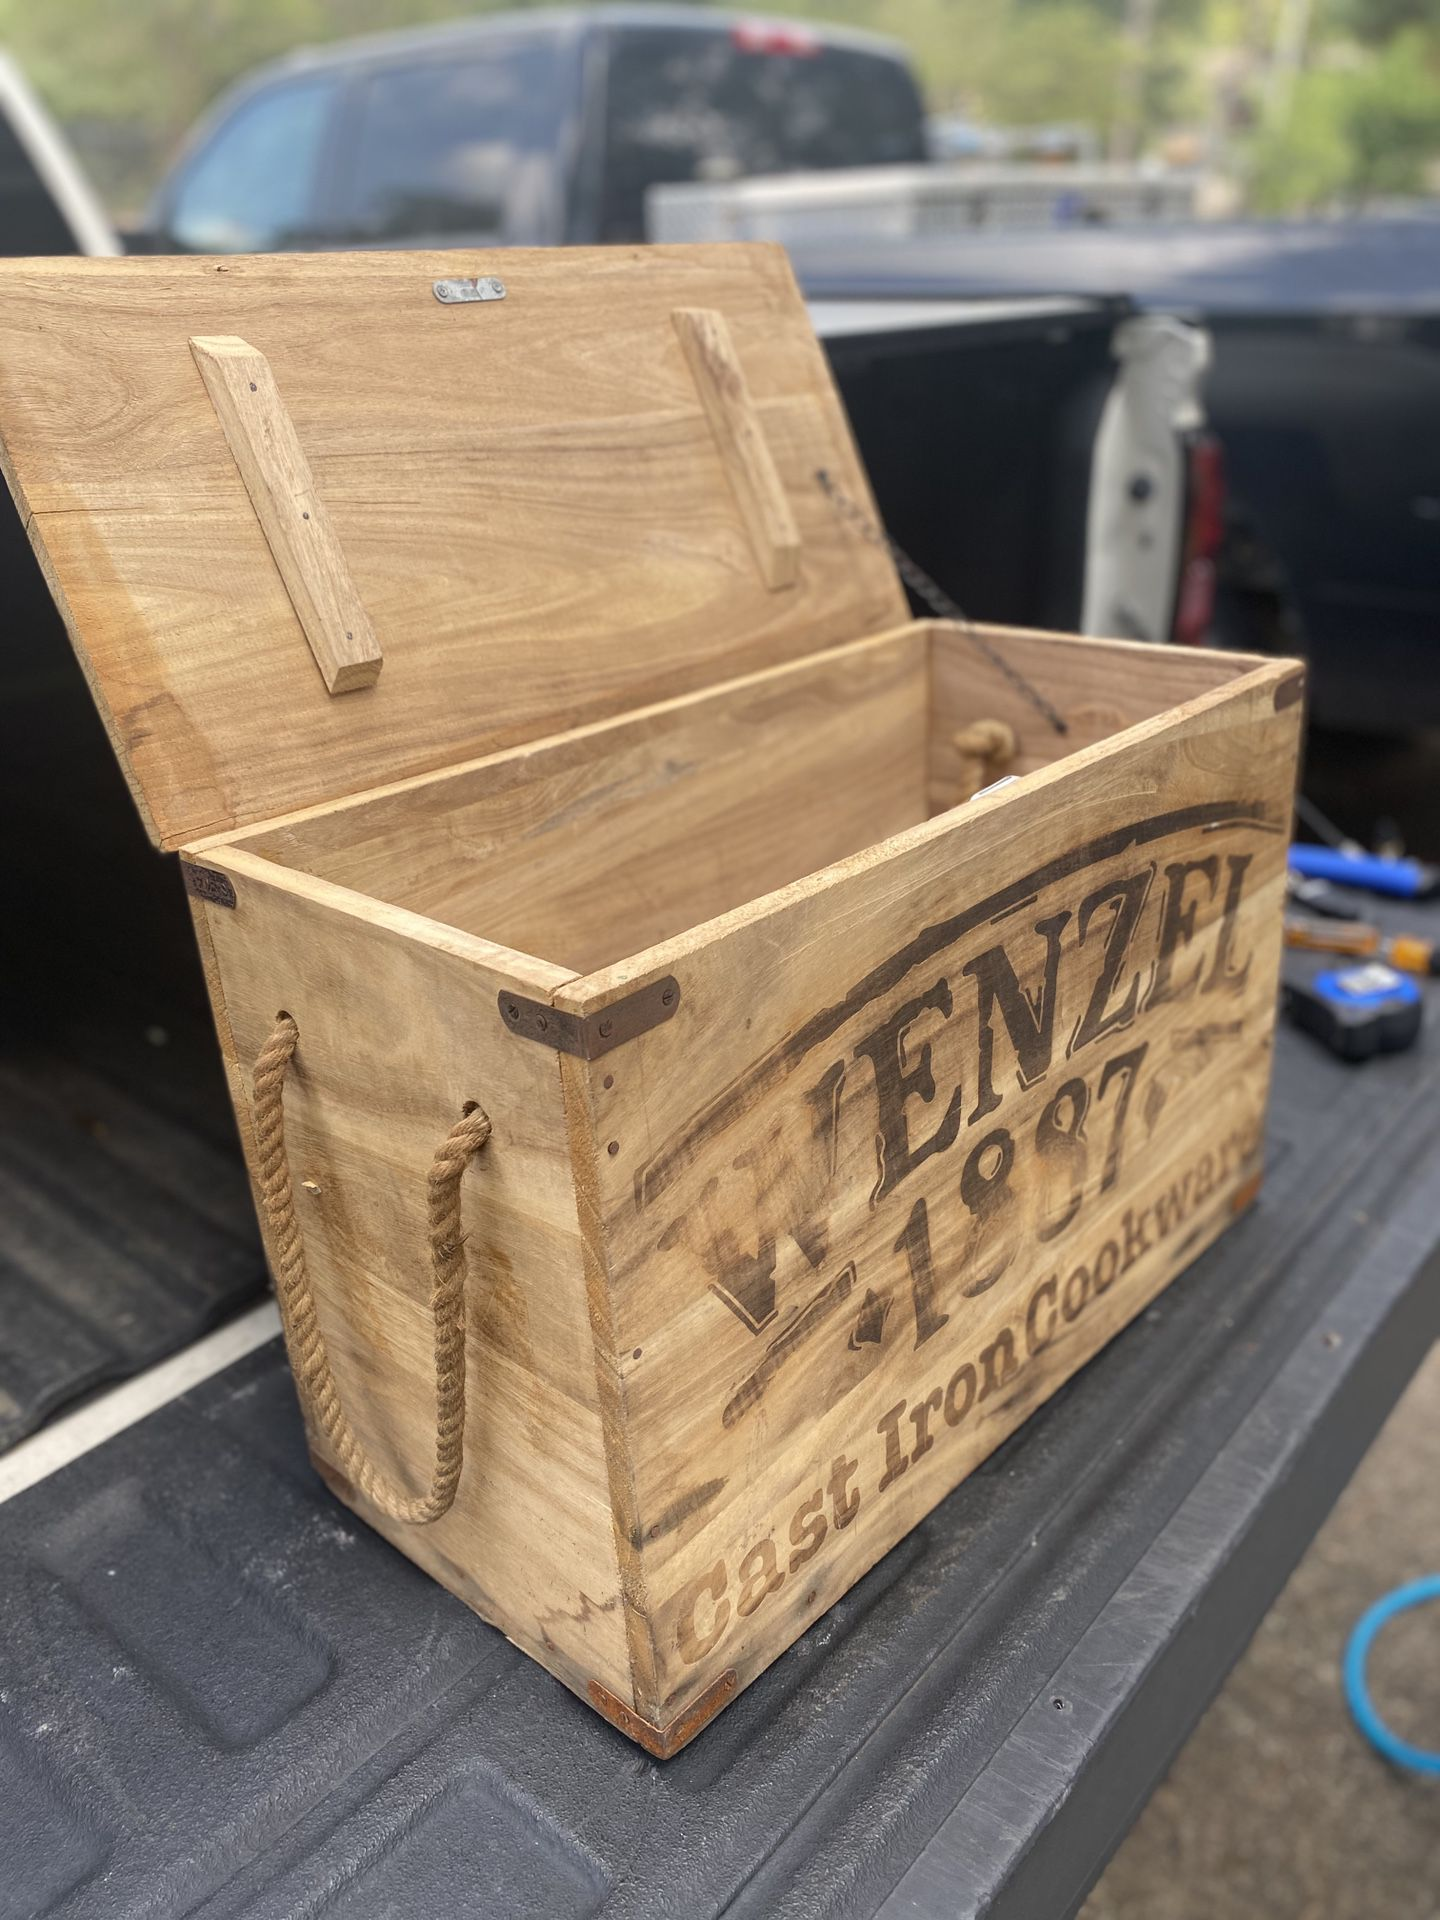 Wenzel cast iron wooden box /crate